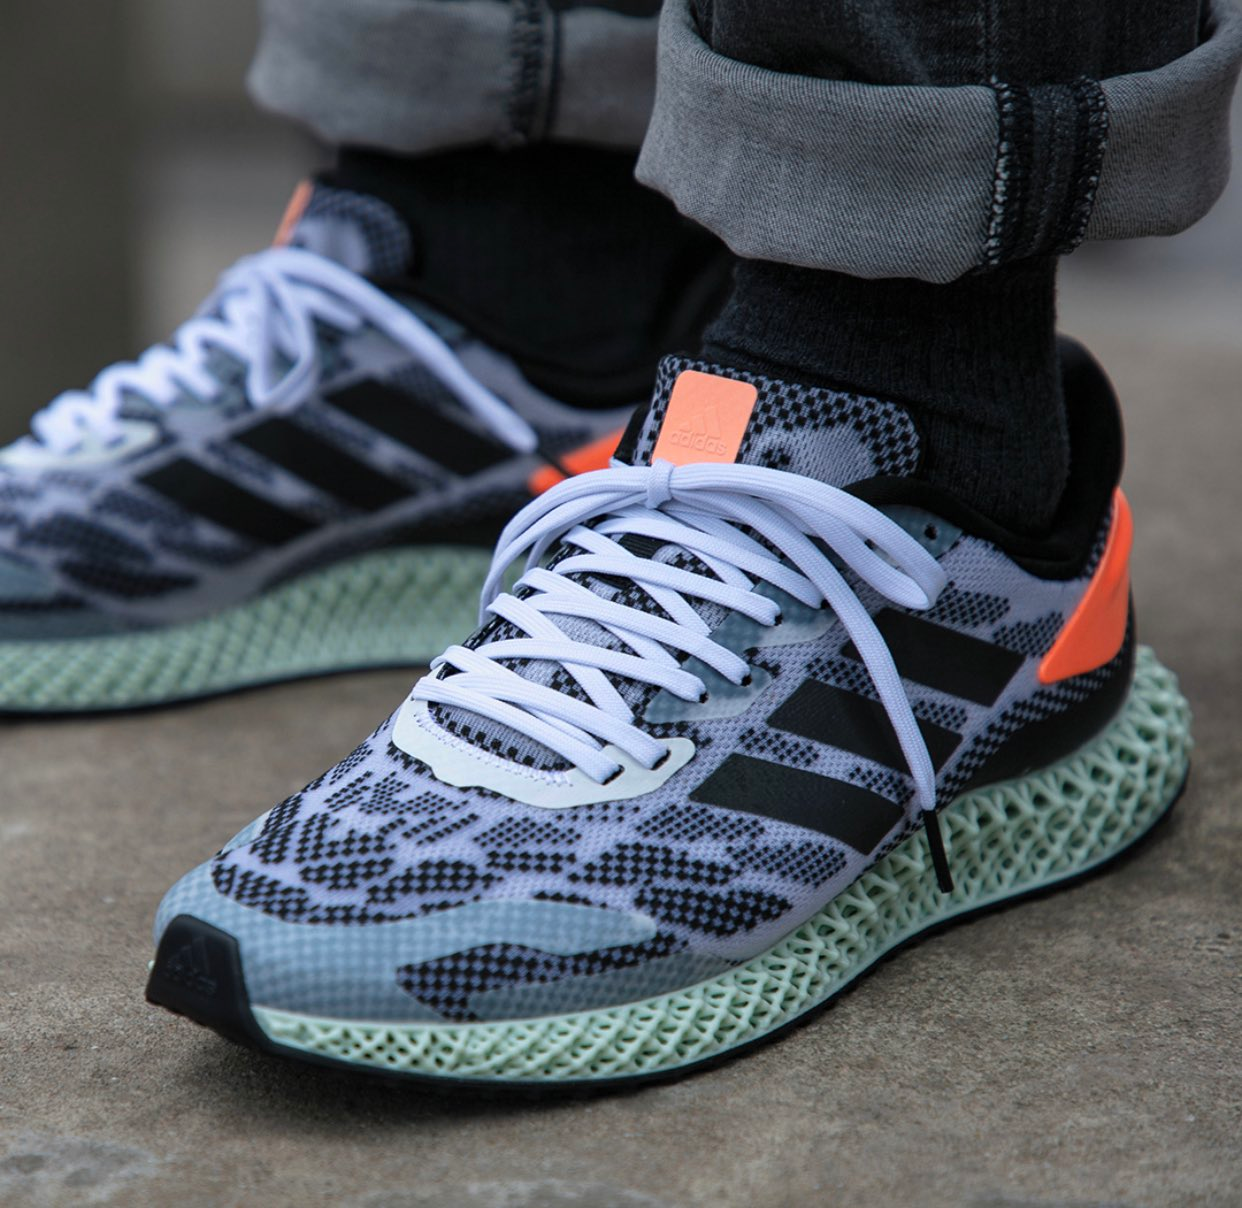 """adidas 4D Run 1.0 """"Black Coral"""" : Sale Price: $120 (Retail $200)  – FREE SHIPPING – use code:  – EXTRA25 –  at checkout"""